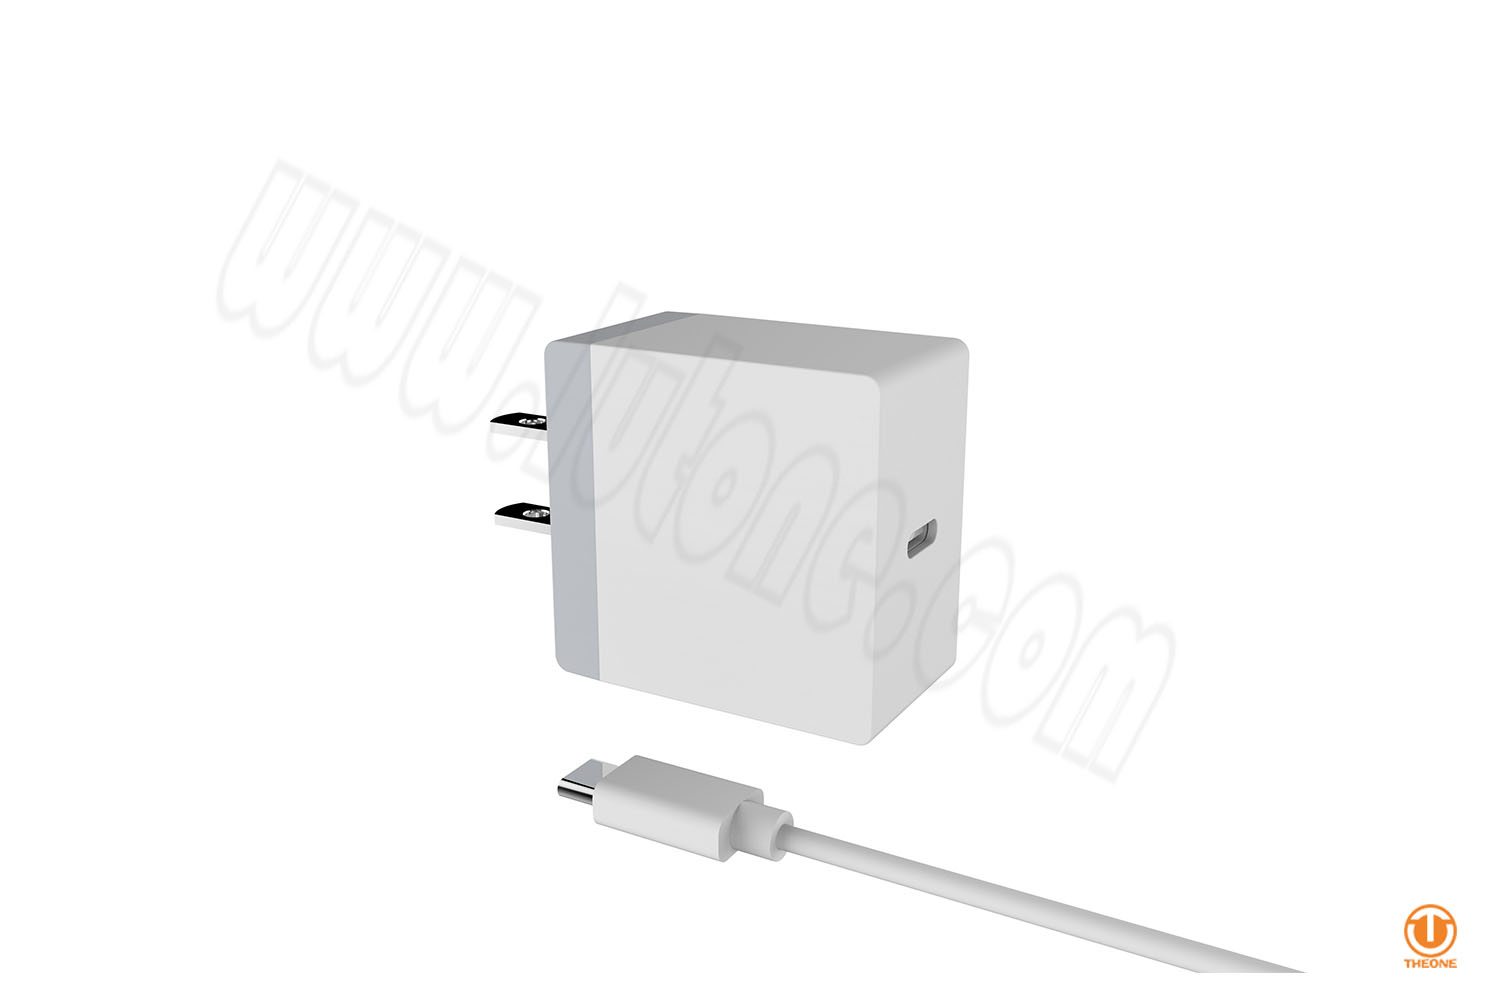 tp184c-1 18w usb-c pd charger